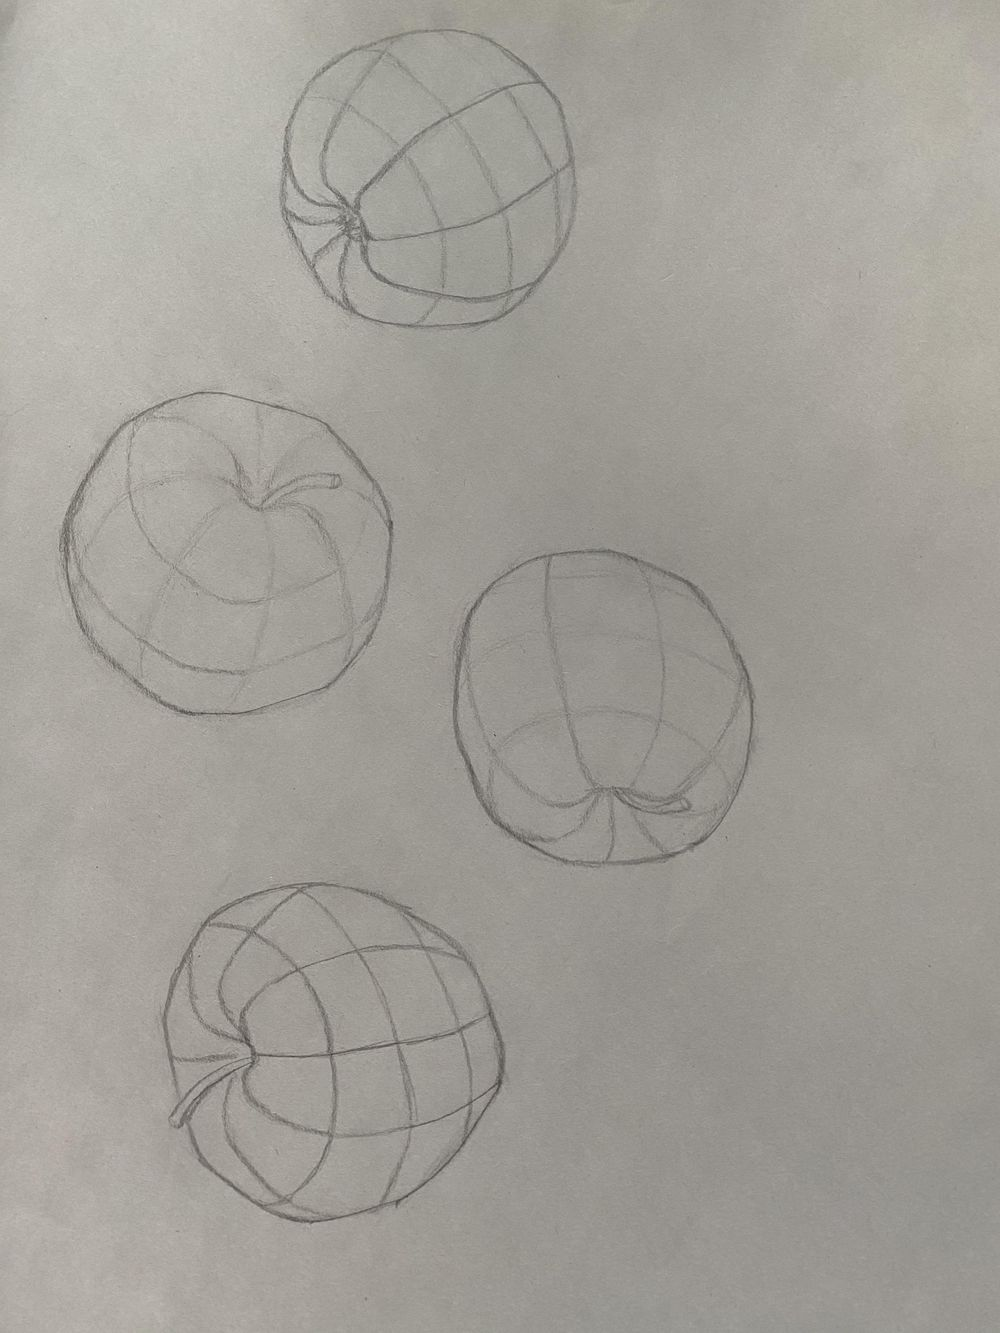 Contours/Drawing with Compelling Contours and Foreshortening - image 2 - student project